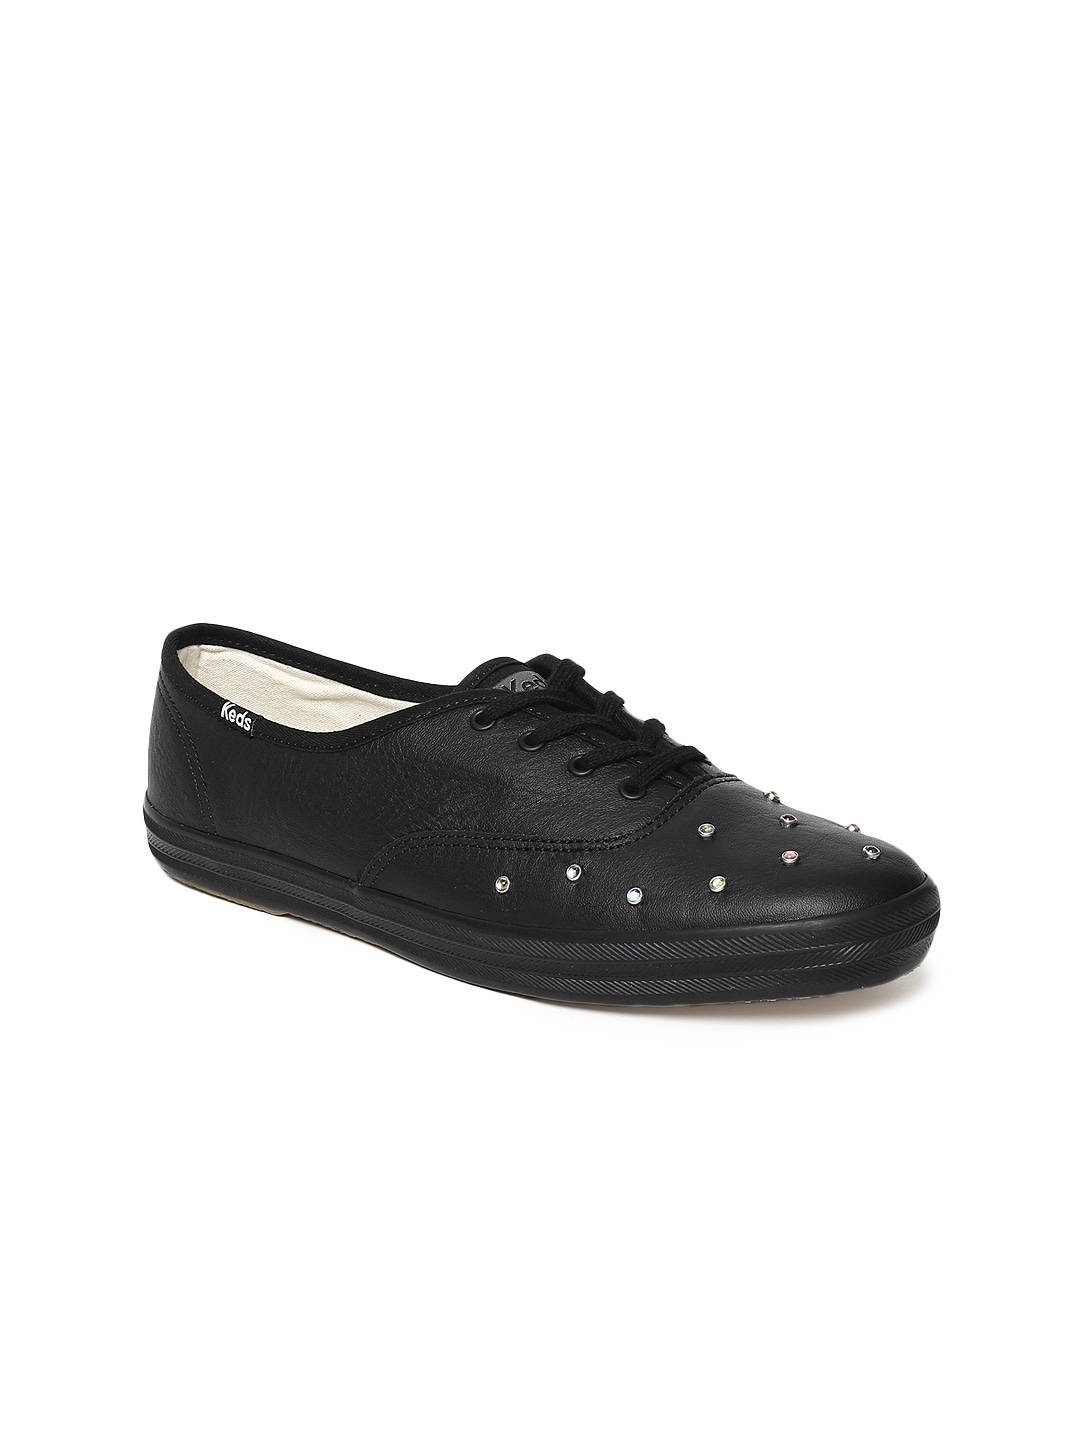 36a9b588b1b Keds Solid - Buy Keds Solid online in India